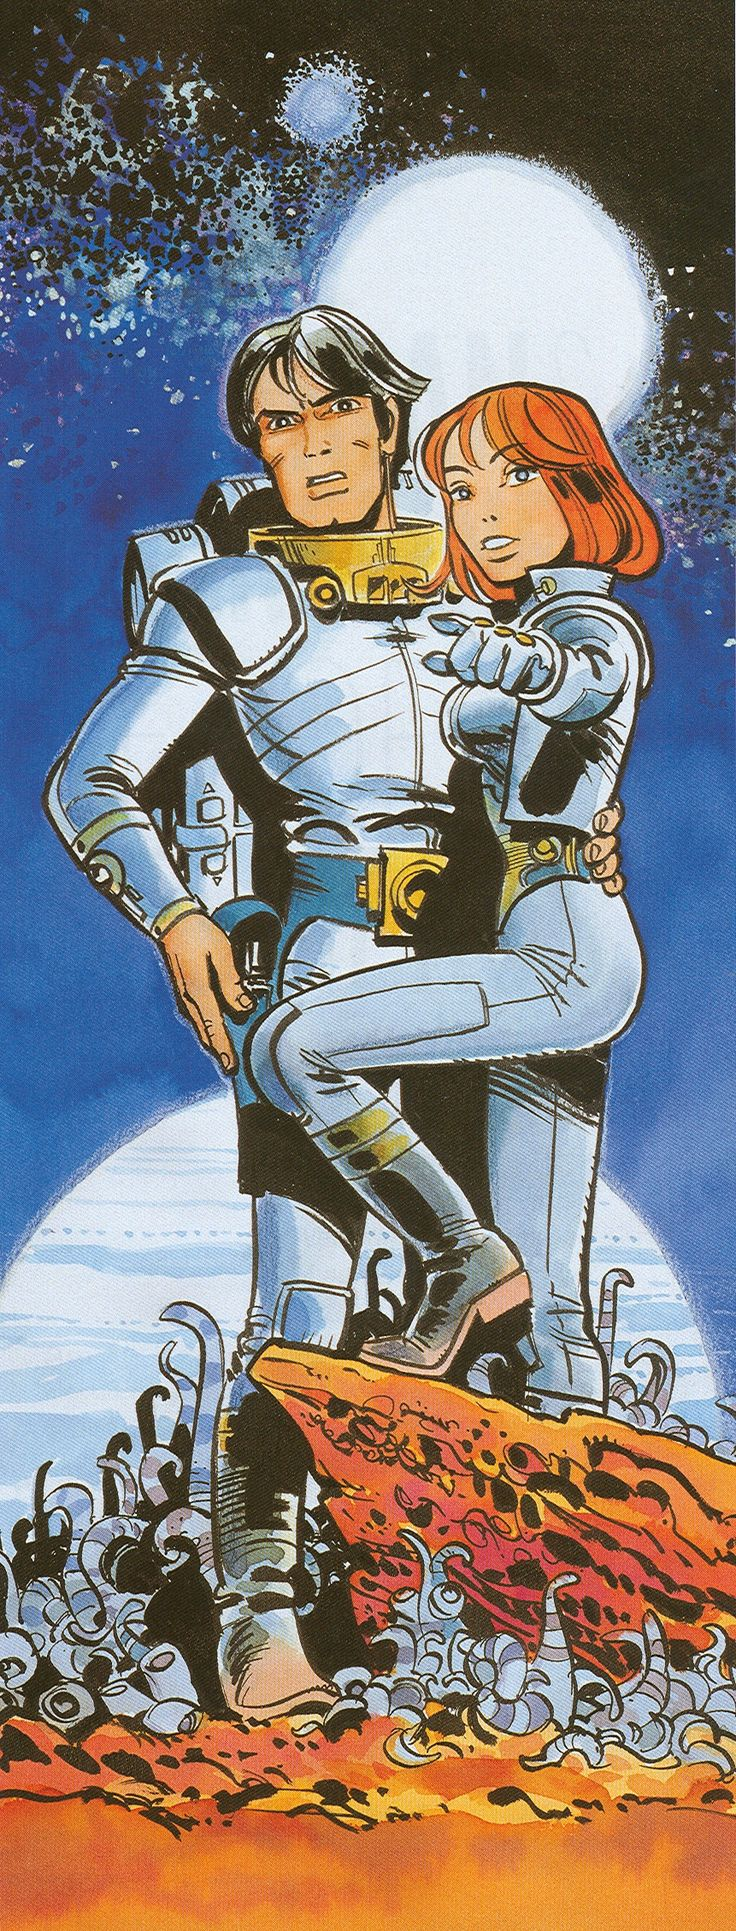 Valérian and Laureline is a French science fiction comics series, created by writer Pierre Christin and artist Jean-Claude Mézières. First published in the magazine Pilote in 1967, the final installment was published in 2010. The early volumes are currently being released in English.